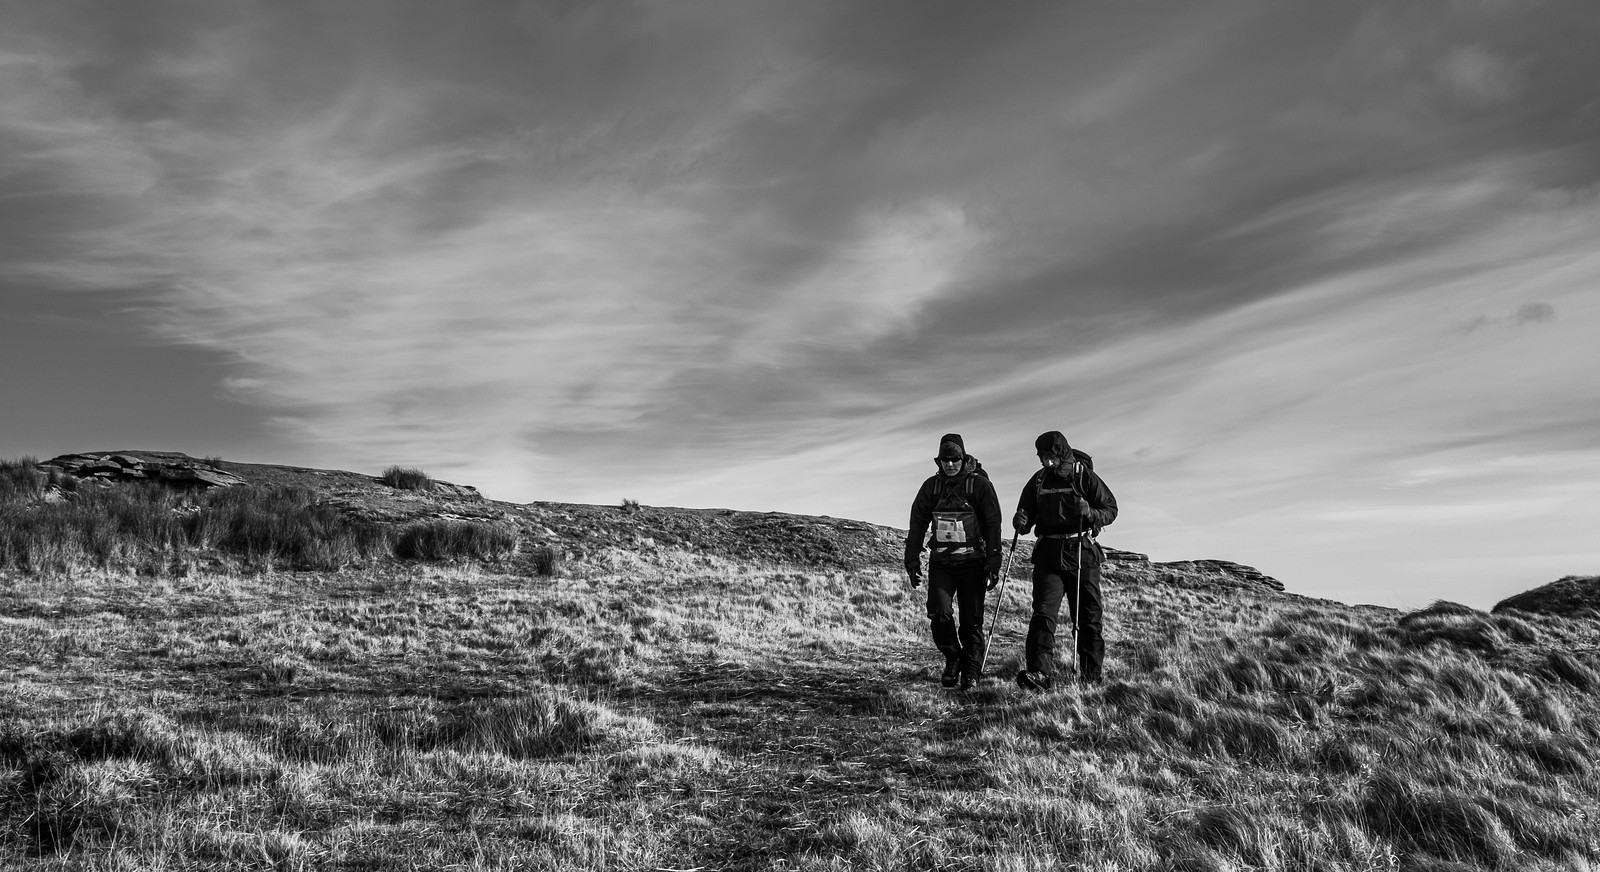 Mart & Bri on a windy Dartmoor